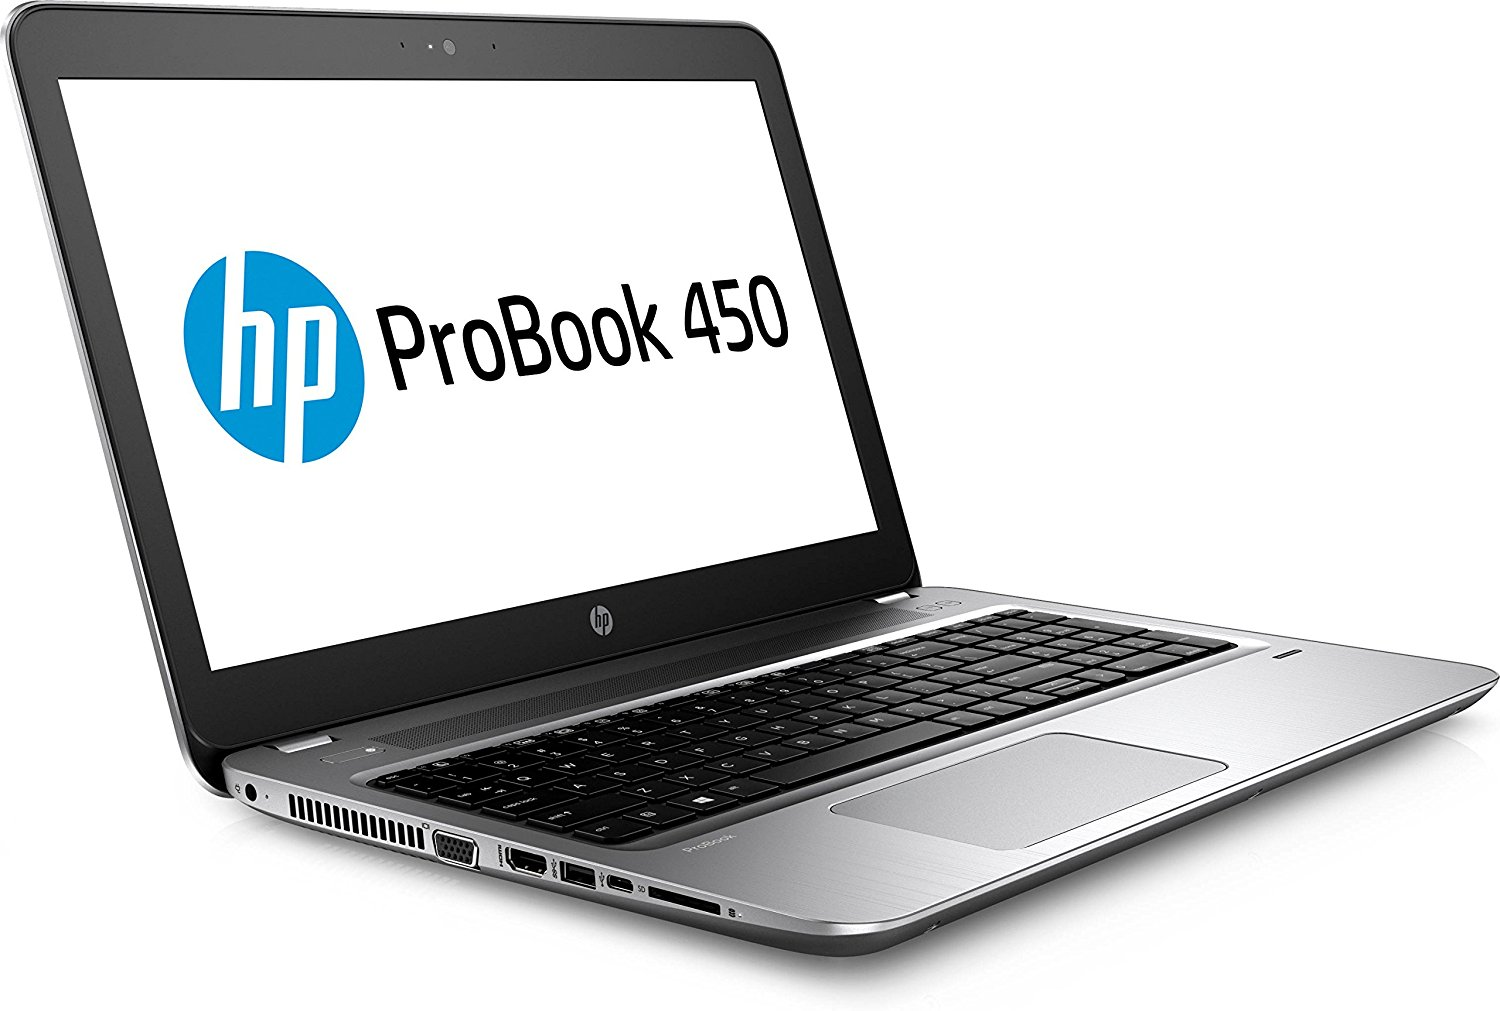 Hp Probook 450 G4 Hp Probook 450 G4 15 6 Quot Latest Core I5 Laptop 8gb Ram